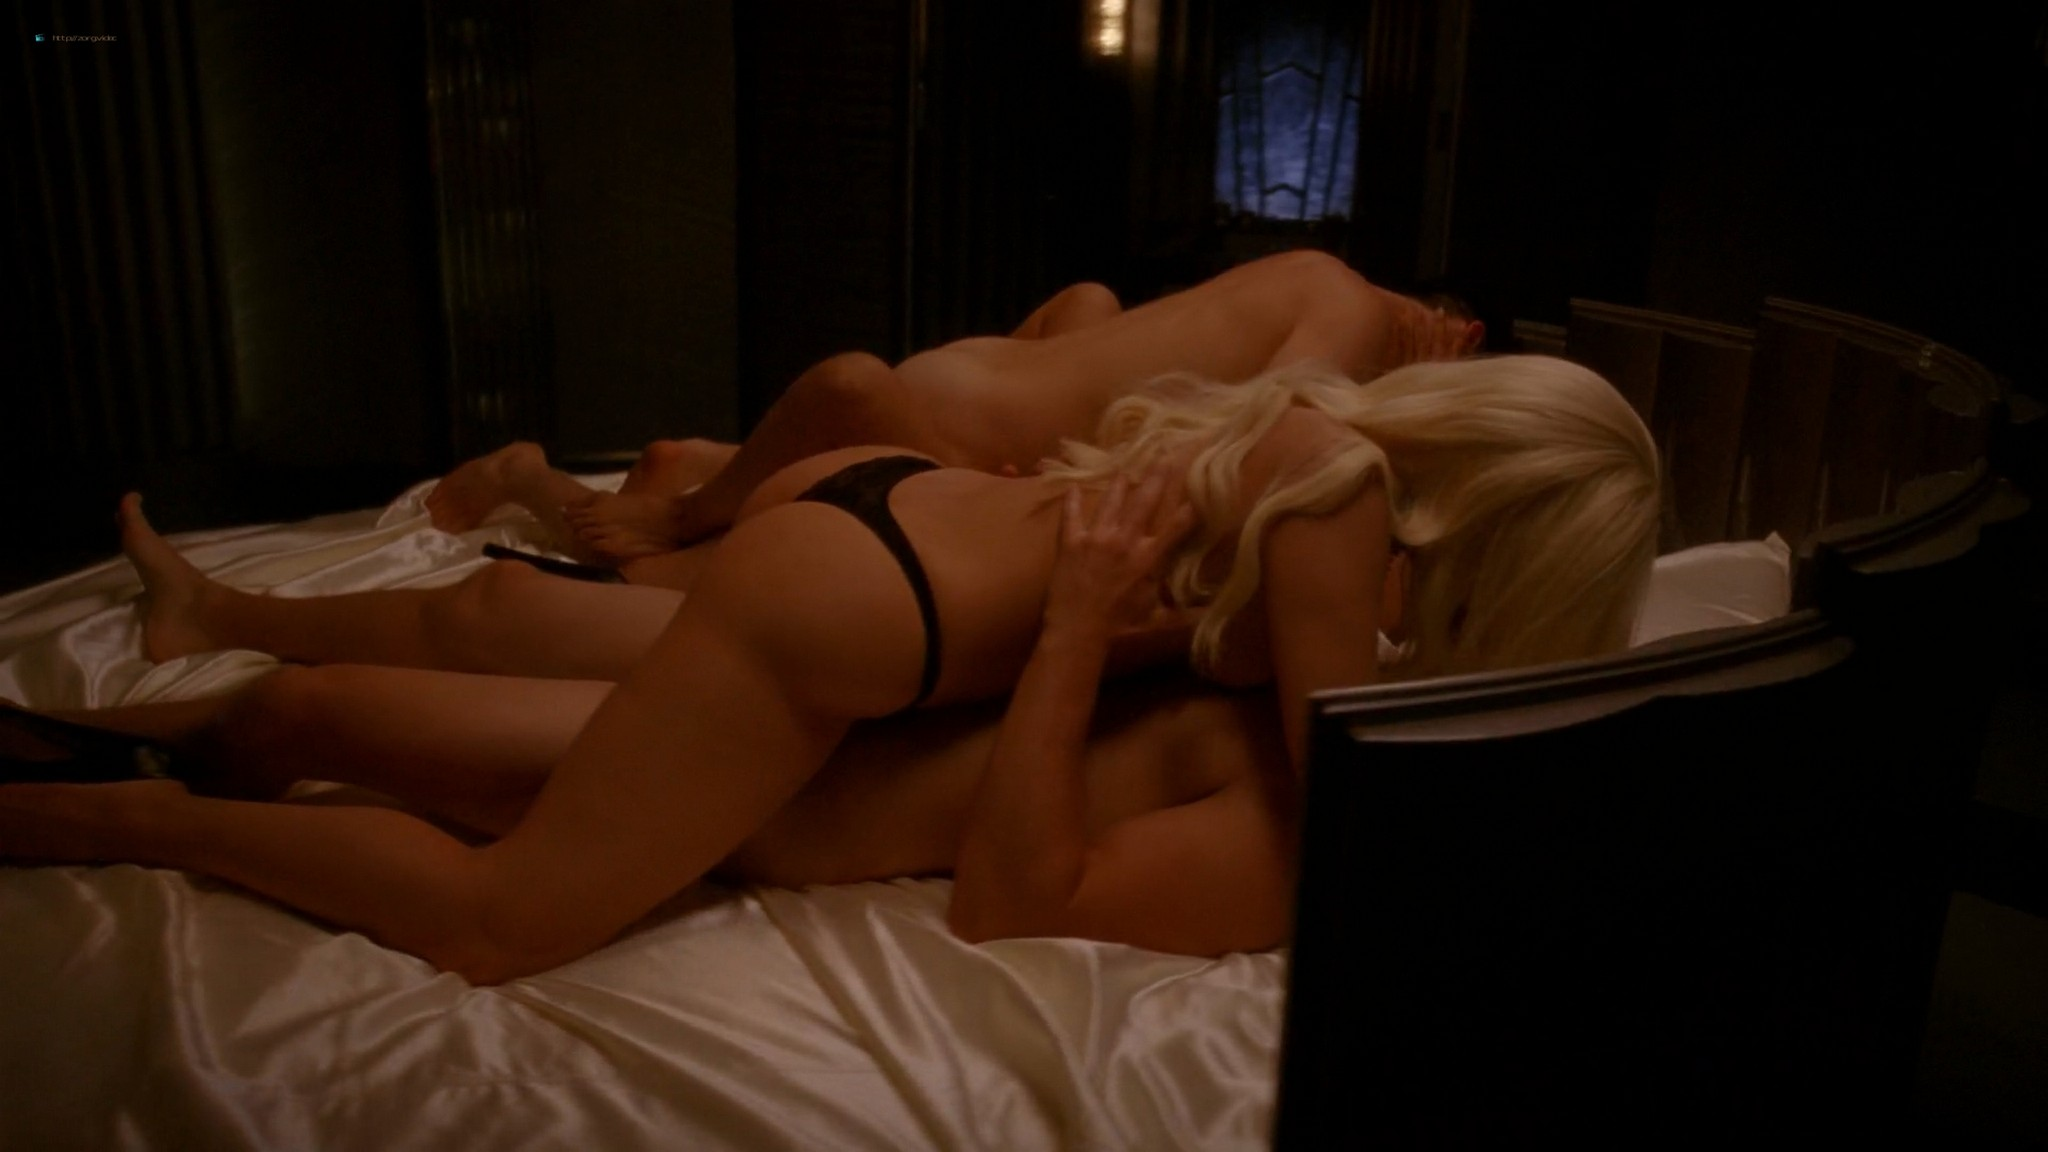 Lady Gaga butt in thong Chasty Ballesteros hot – American Horror Story s05e01 (2015) HD 1080p (8)